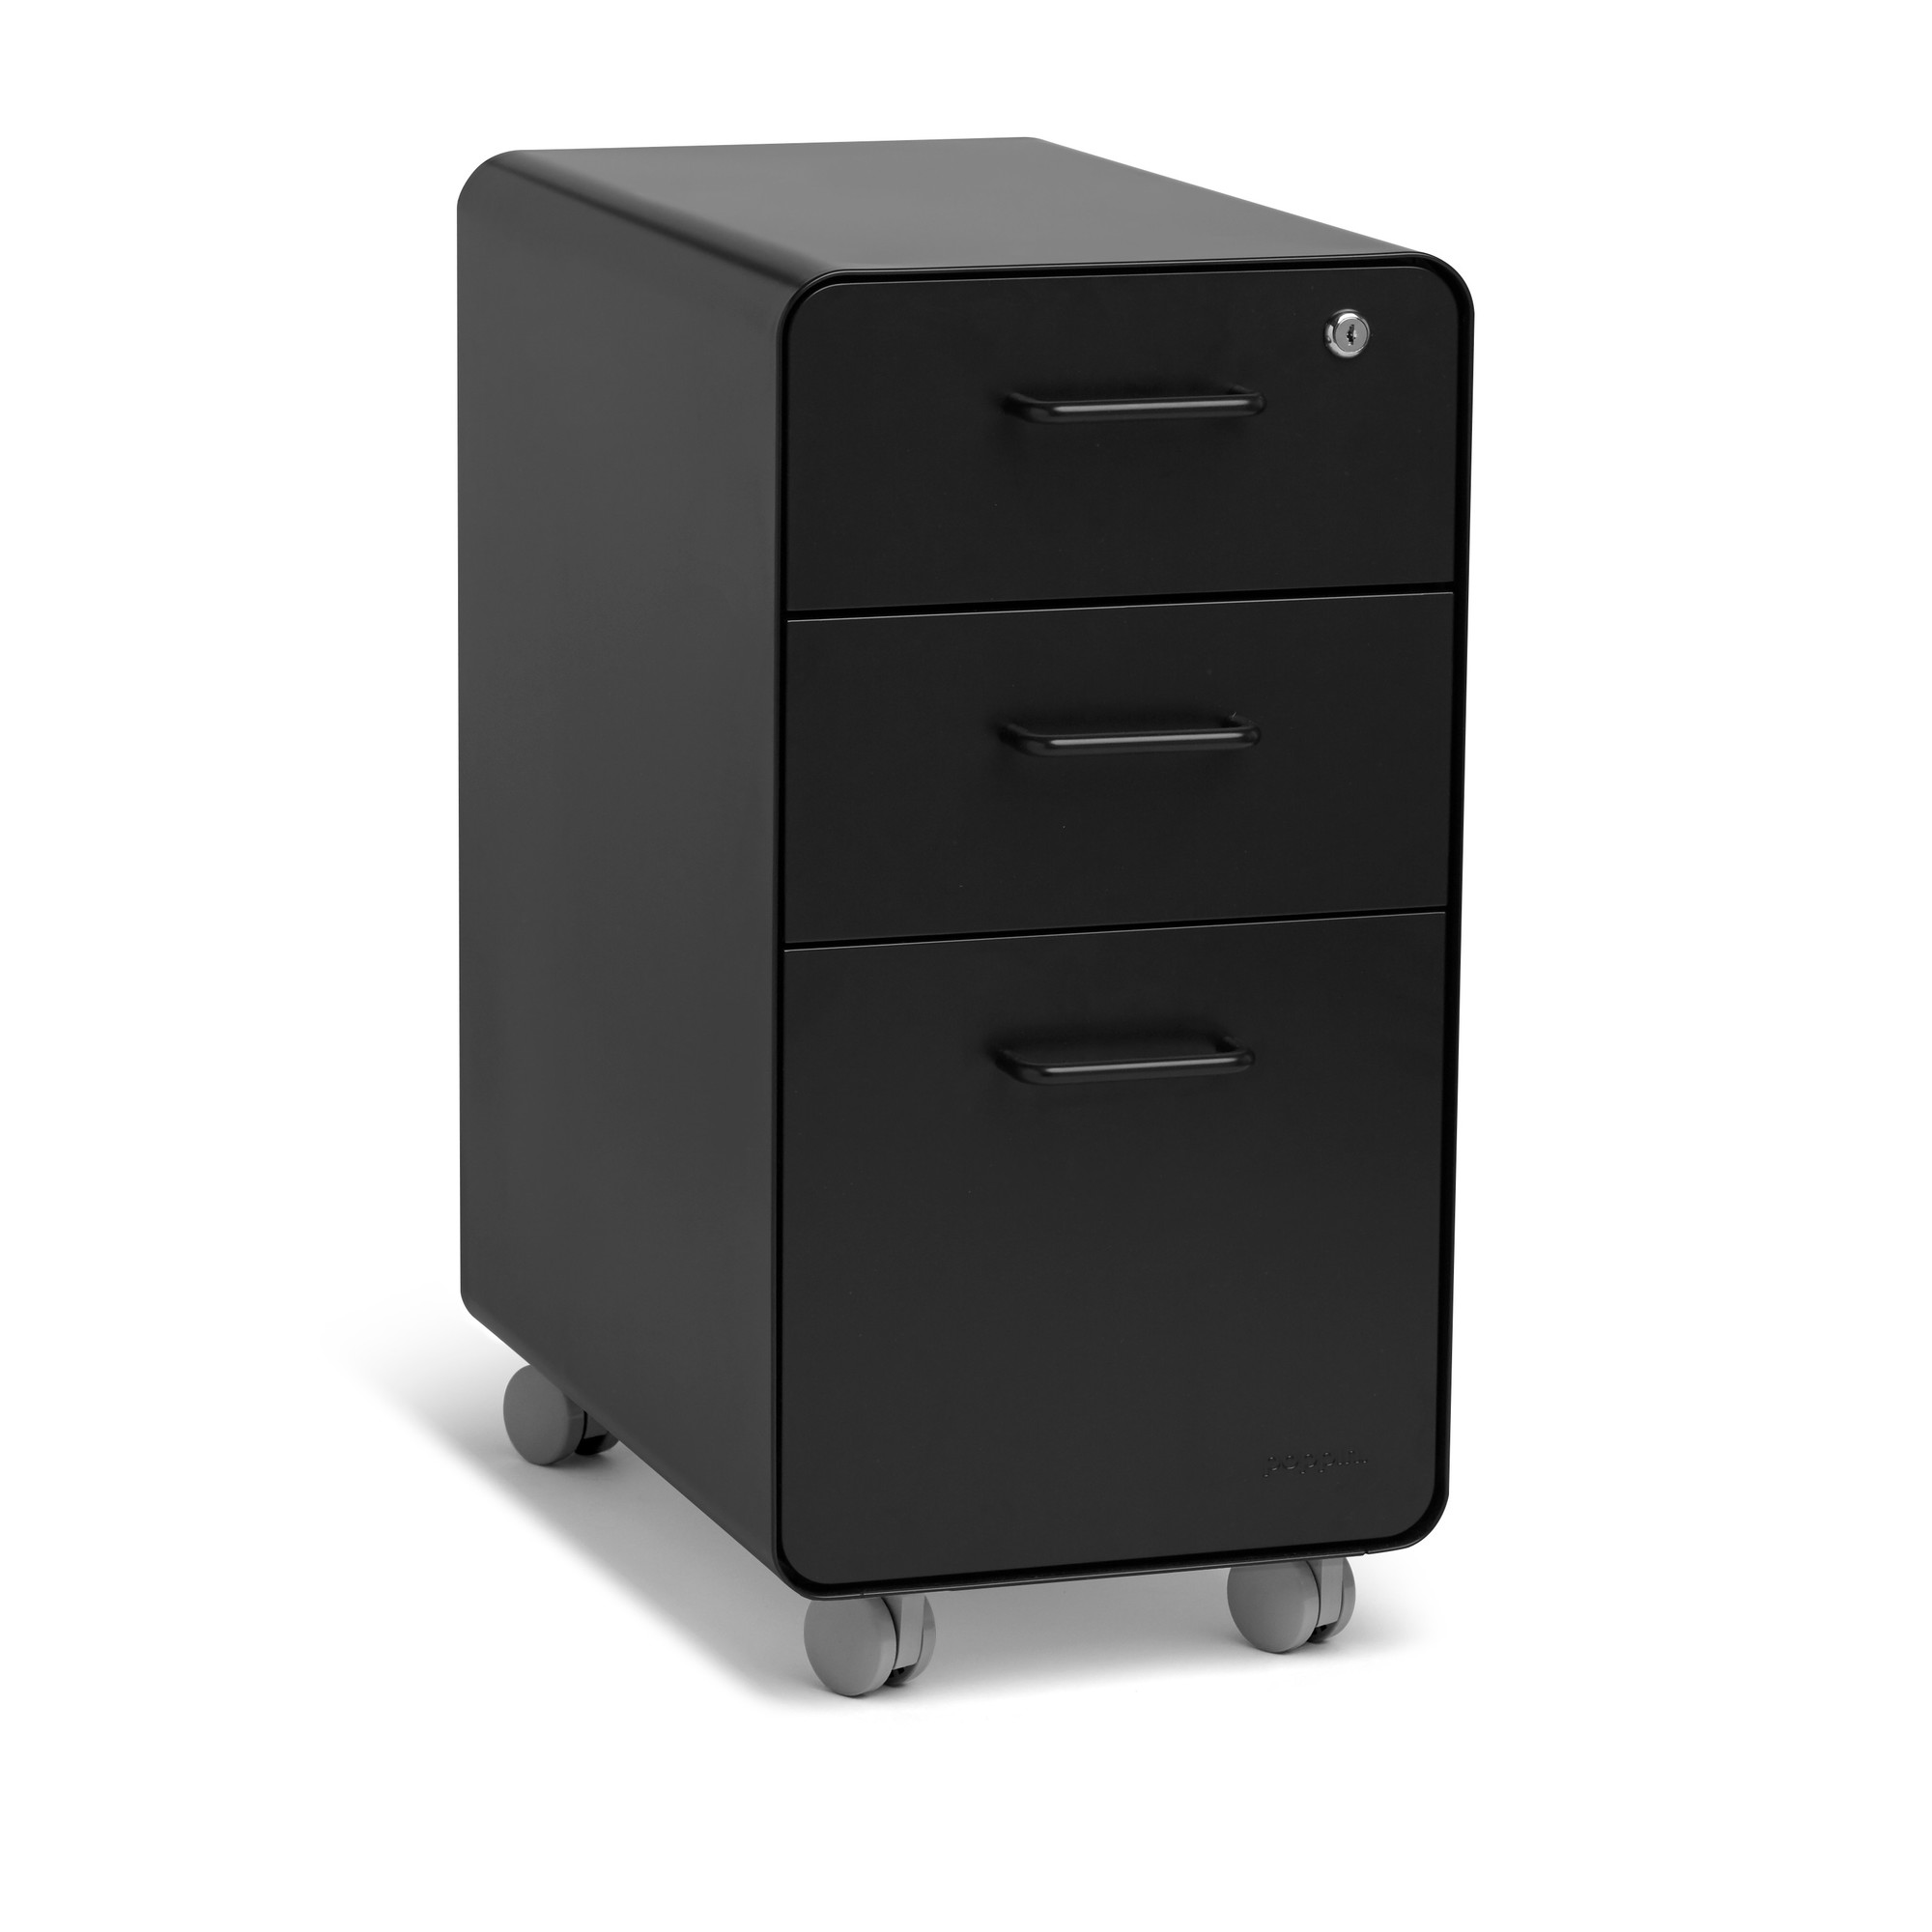 Black Slim Stow 3 Drawer File Cabinet, Rolling,Black,hi Res. Loading Zoom